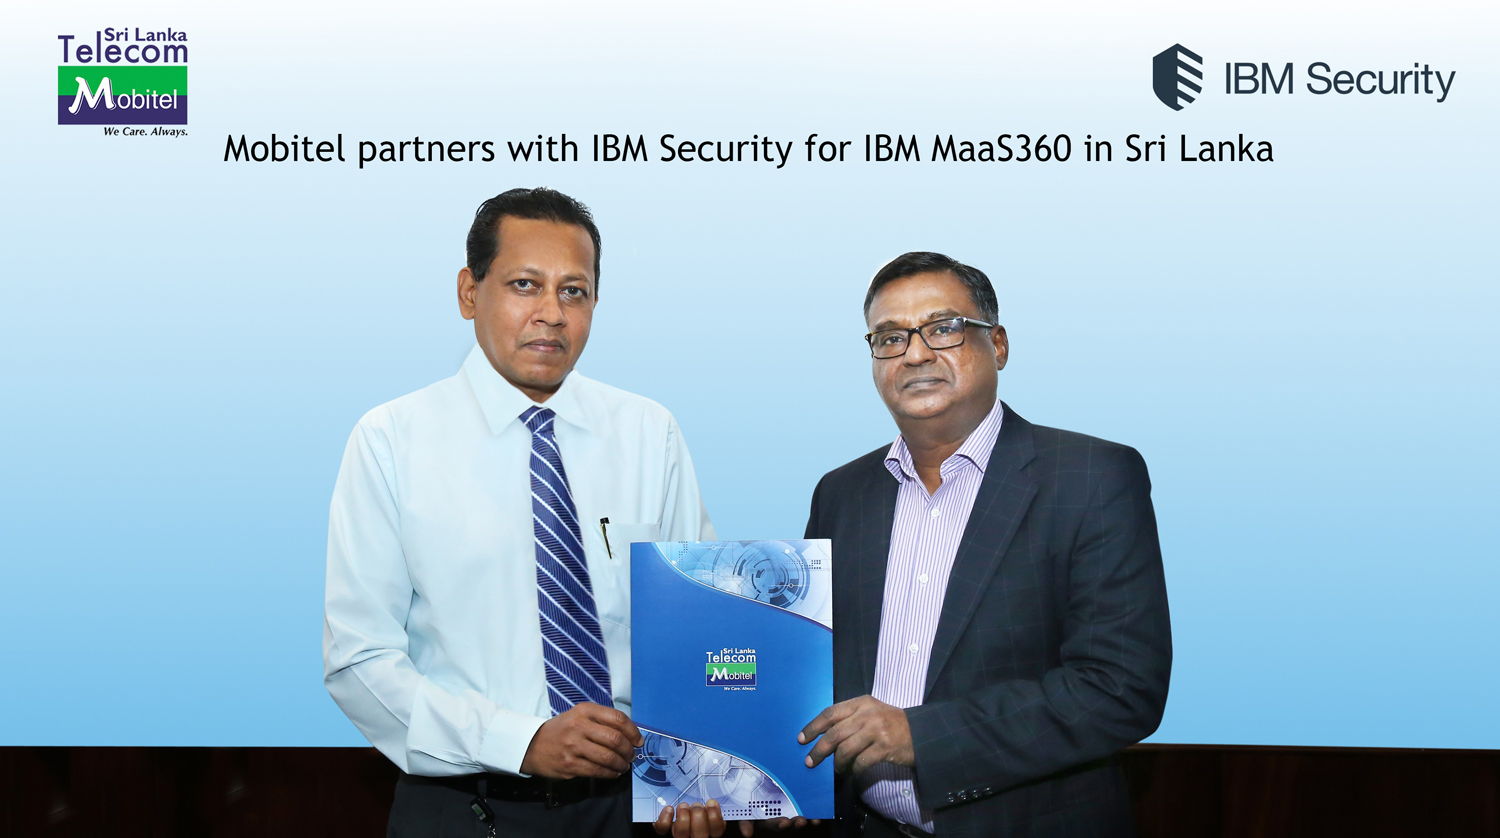 Mobitel selects IBM to enhance enterprise mobile security in